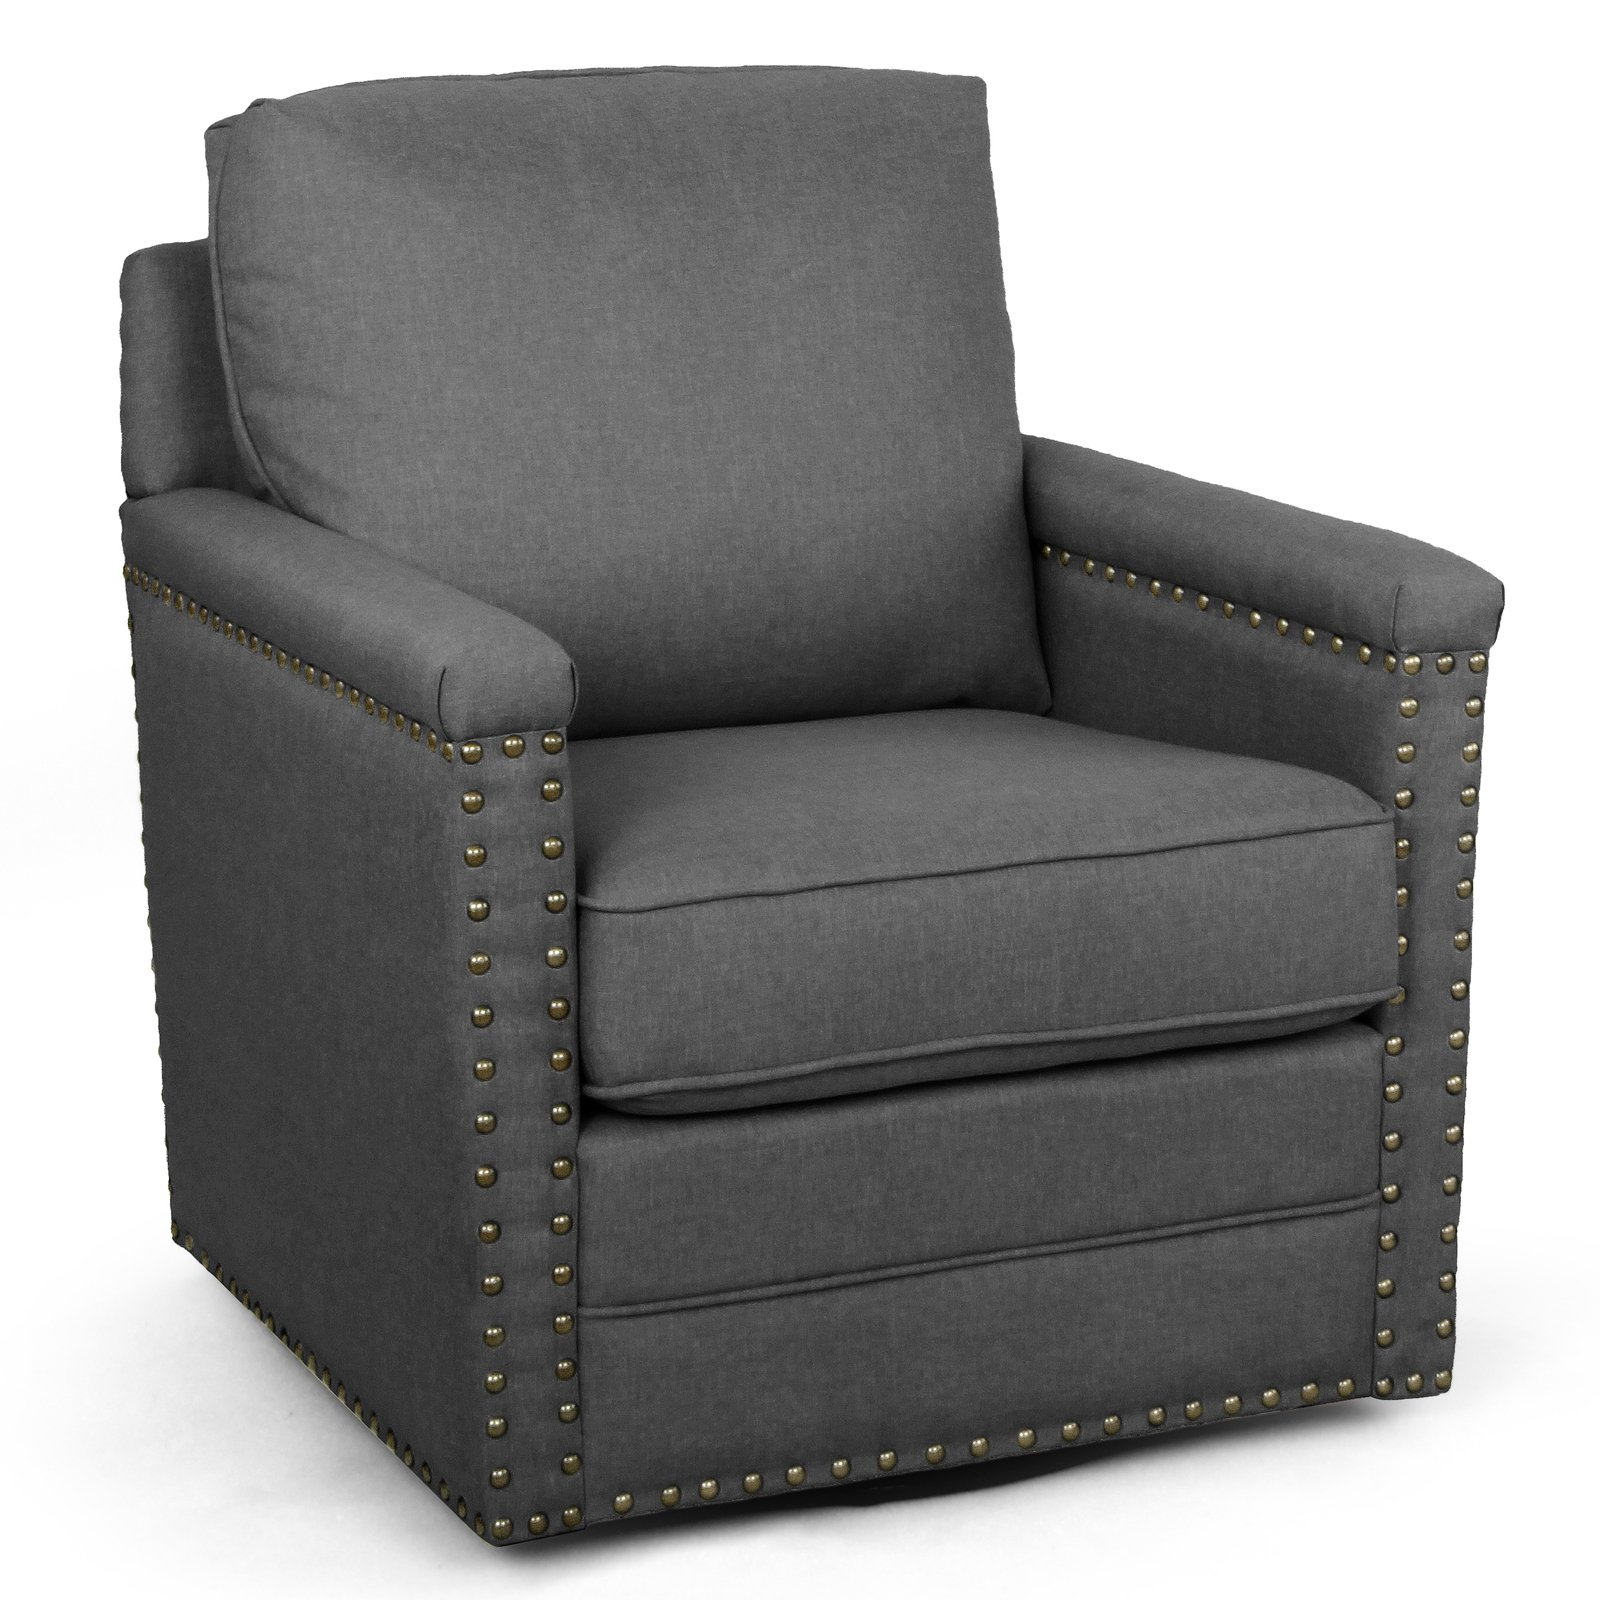 Baxton Studio Ashley Modern and Contemporary Classic Retro Gray Fabric Upholstered Swivel Armchair with Bronze Nailhead... by Wholesale Interiors